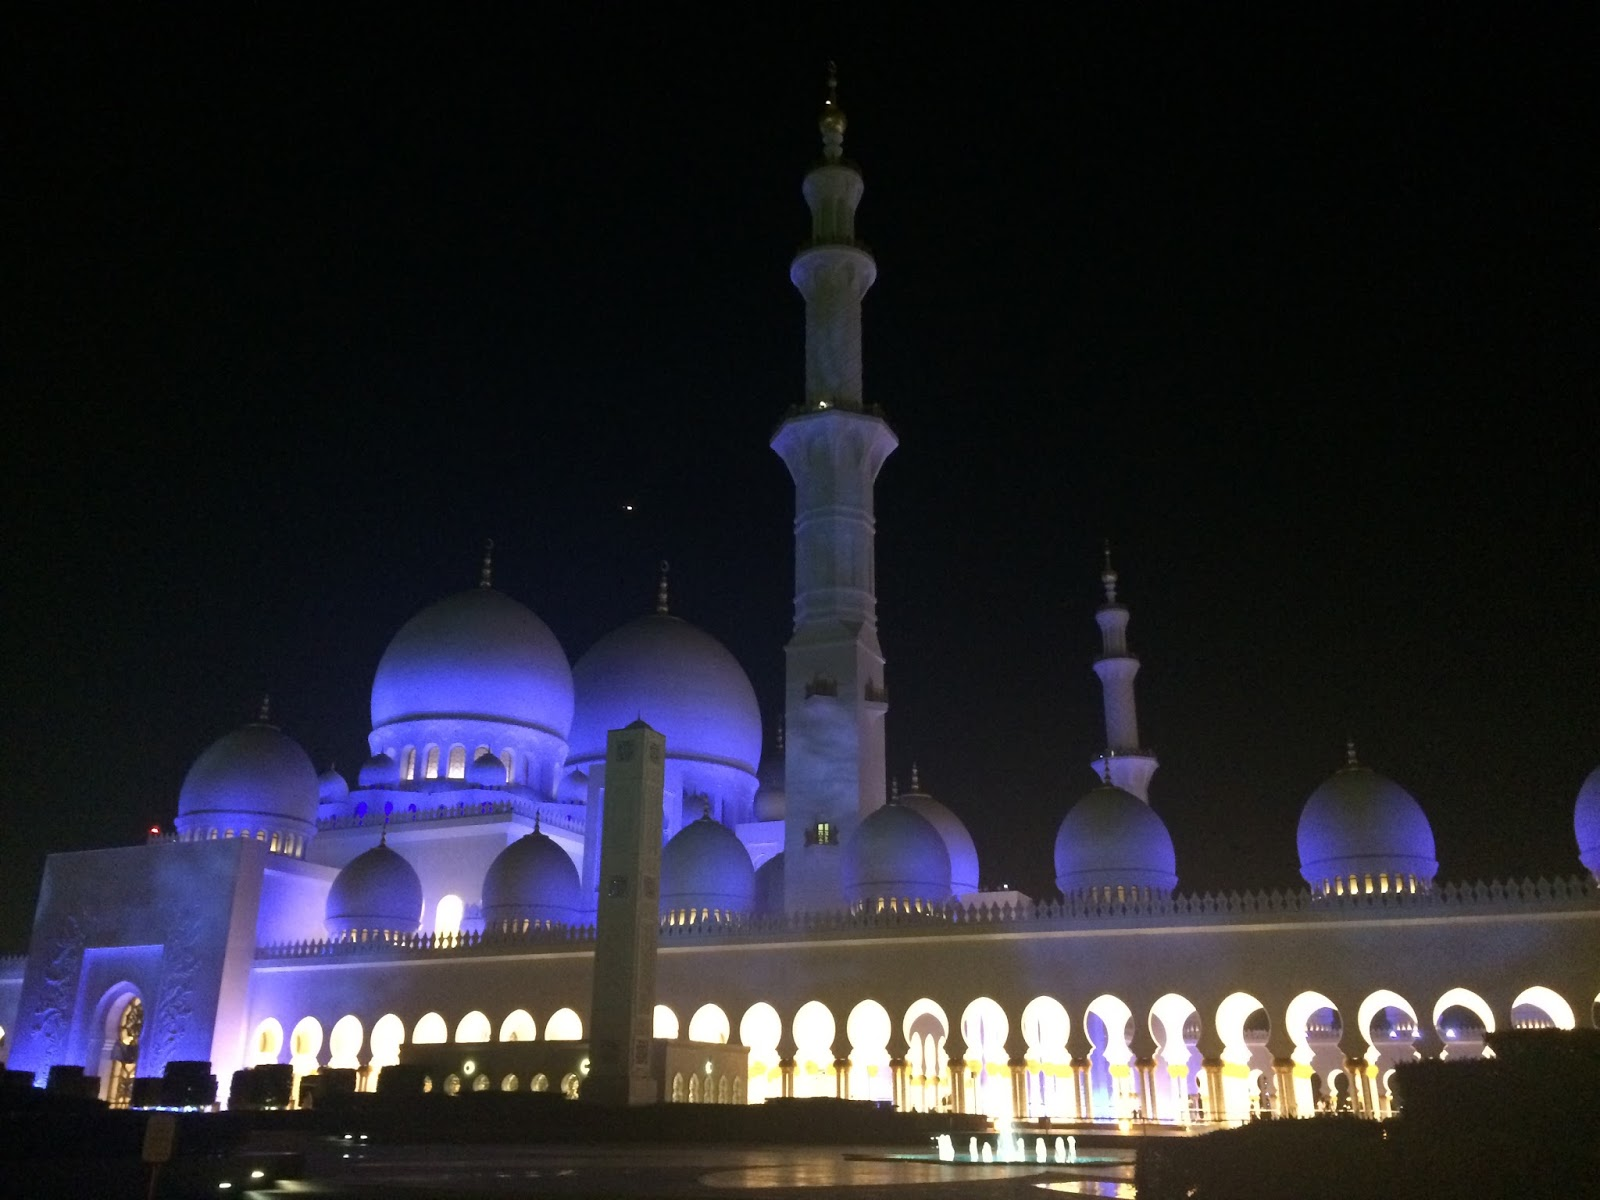 Image of Sheikh Zayed Grand Mosque Abu Dhabi